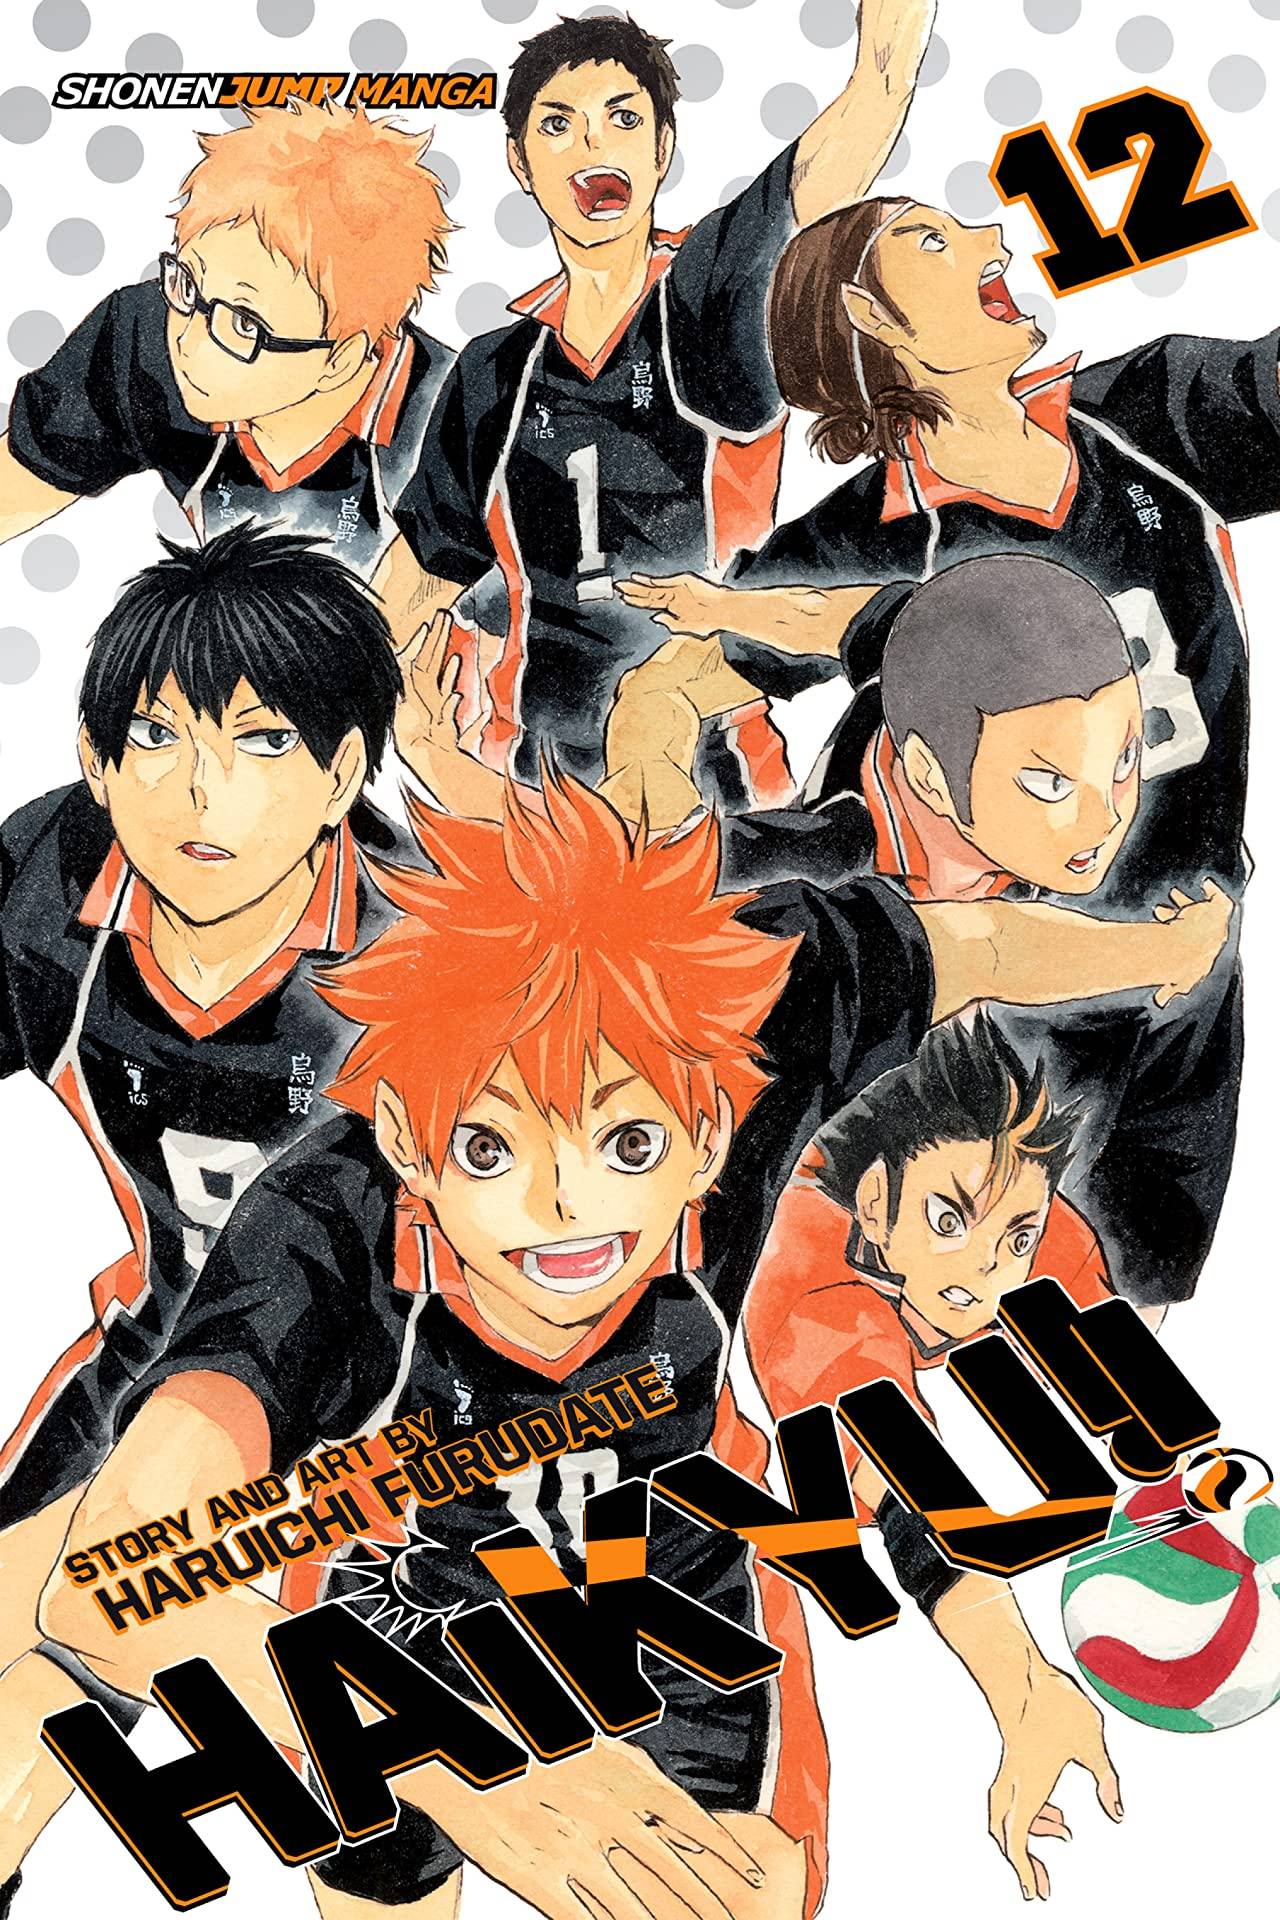 Haikyu!! Vol. 12